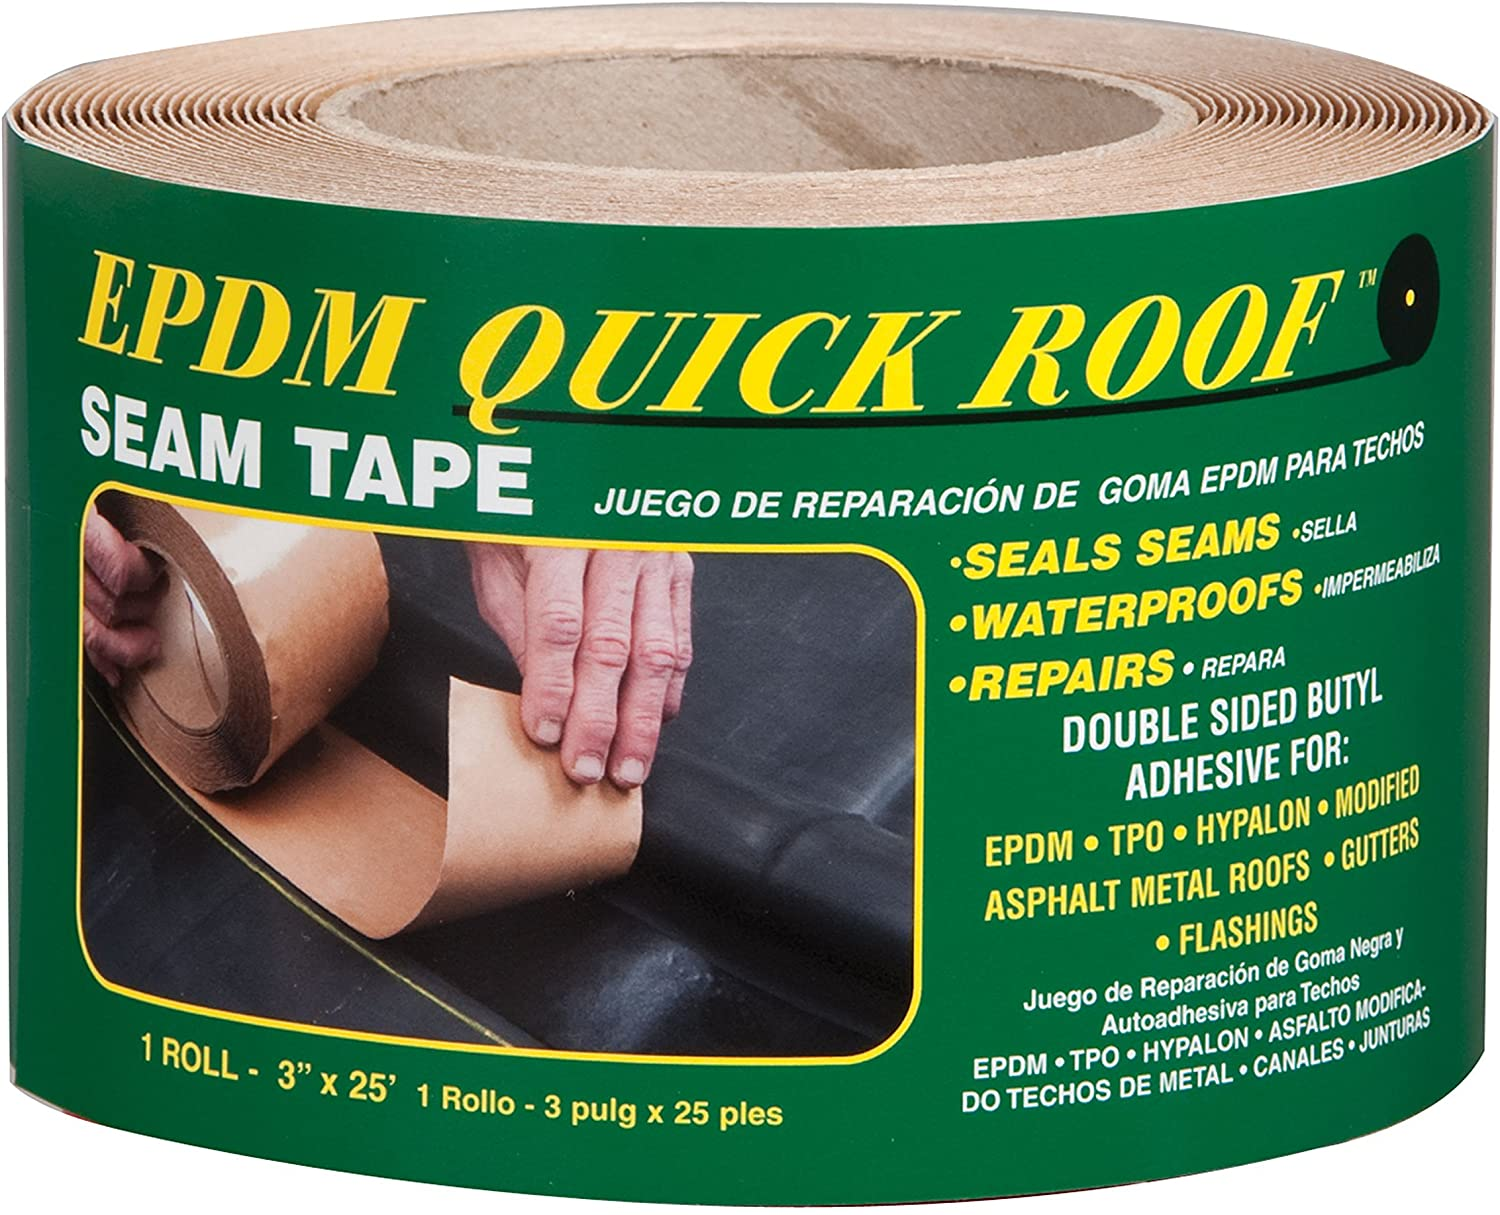 Cofair BST325 EPDM Quick Roof Seam Tape - 3